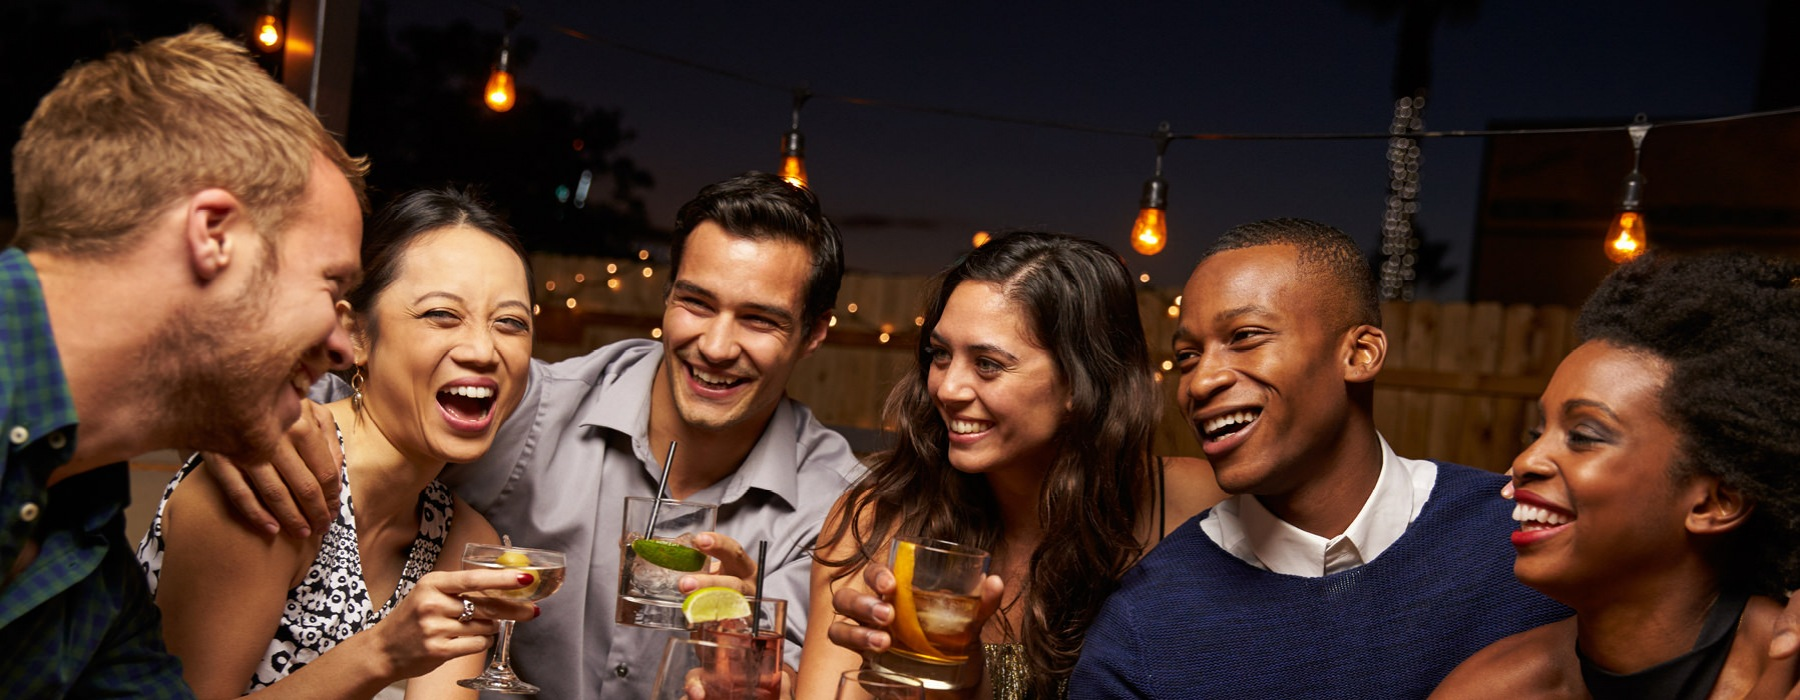 Group of young people enjoying drinks together